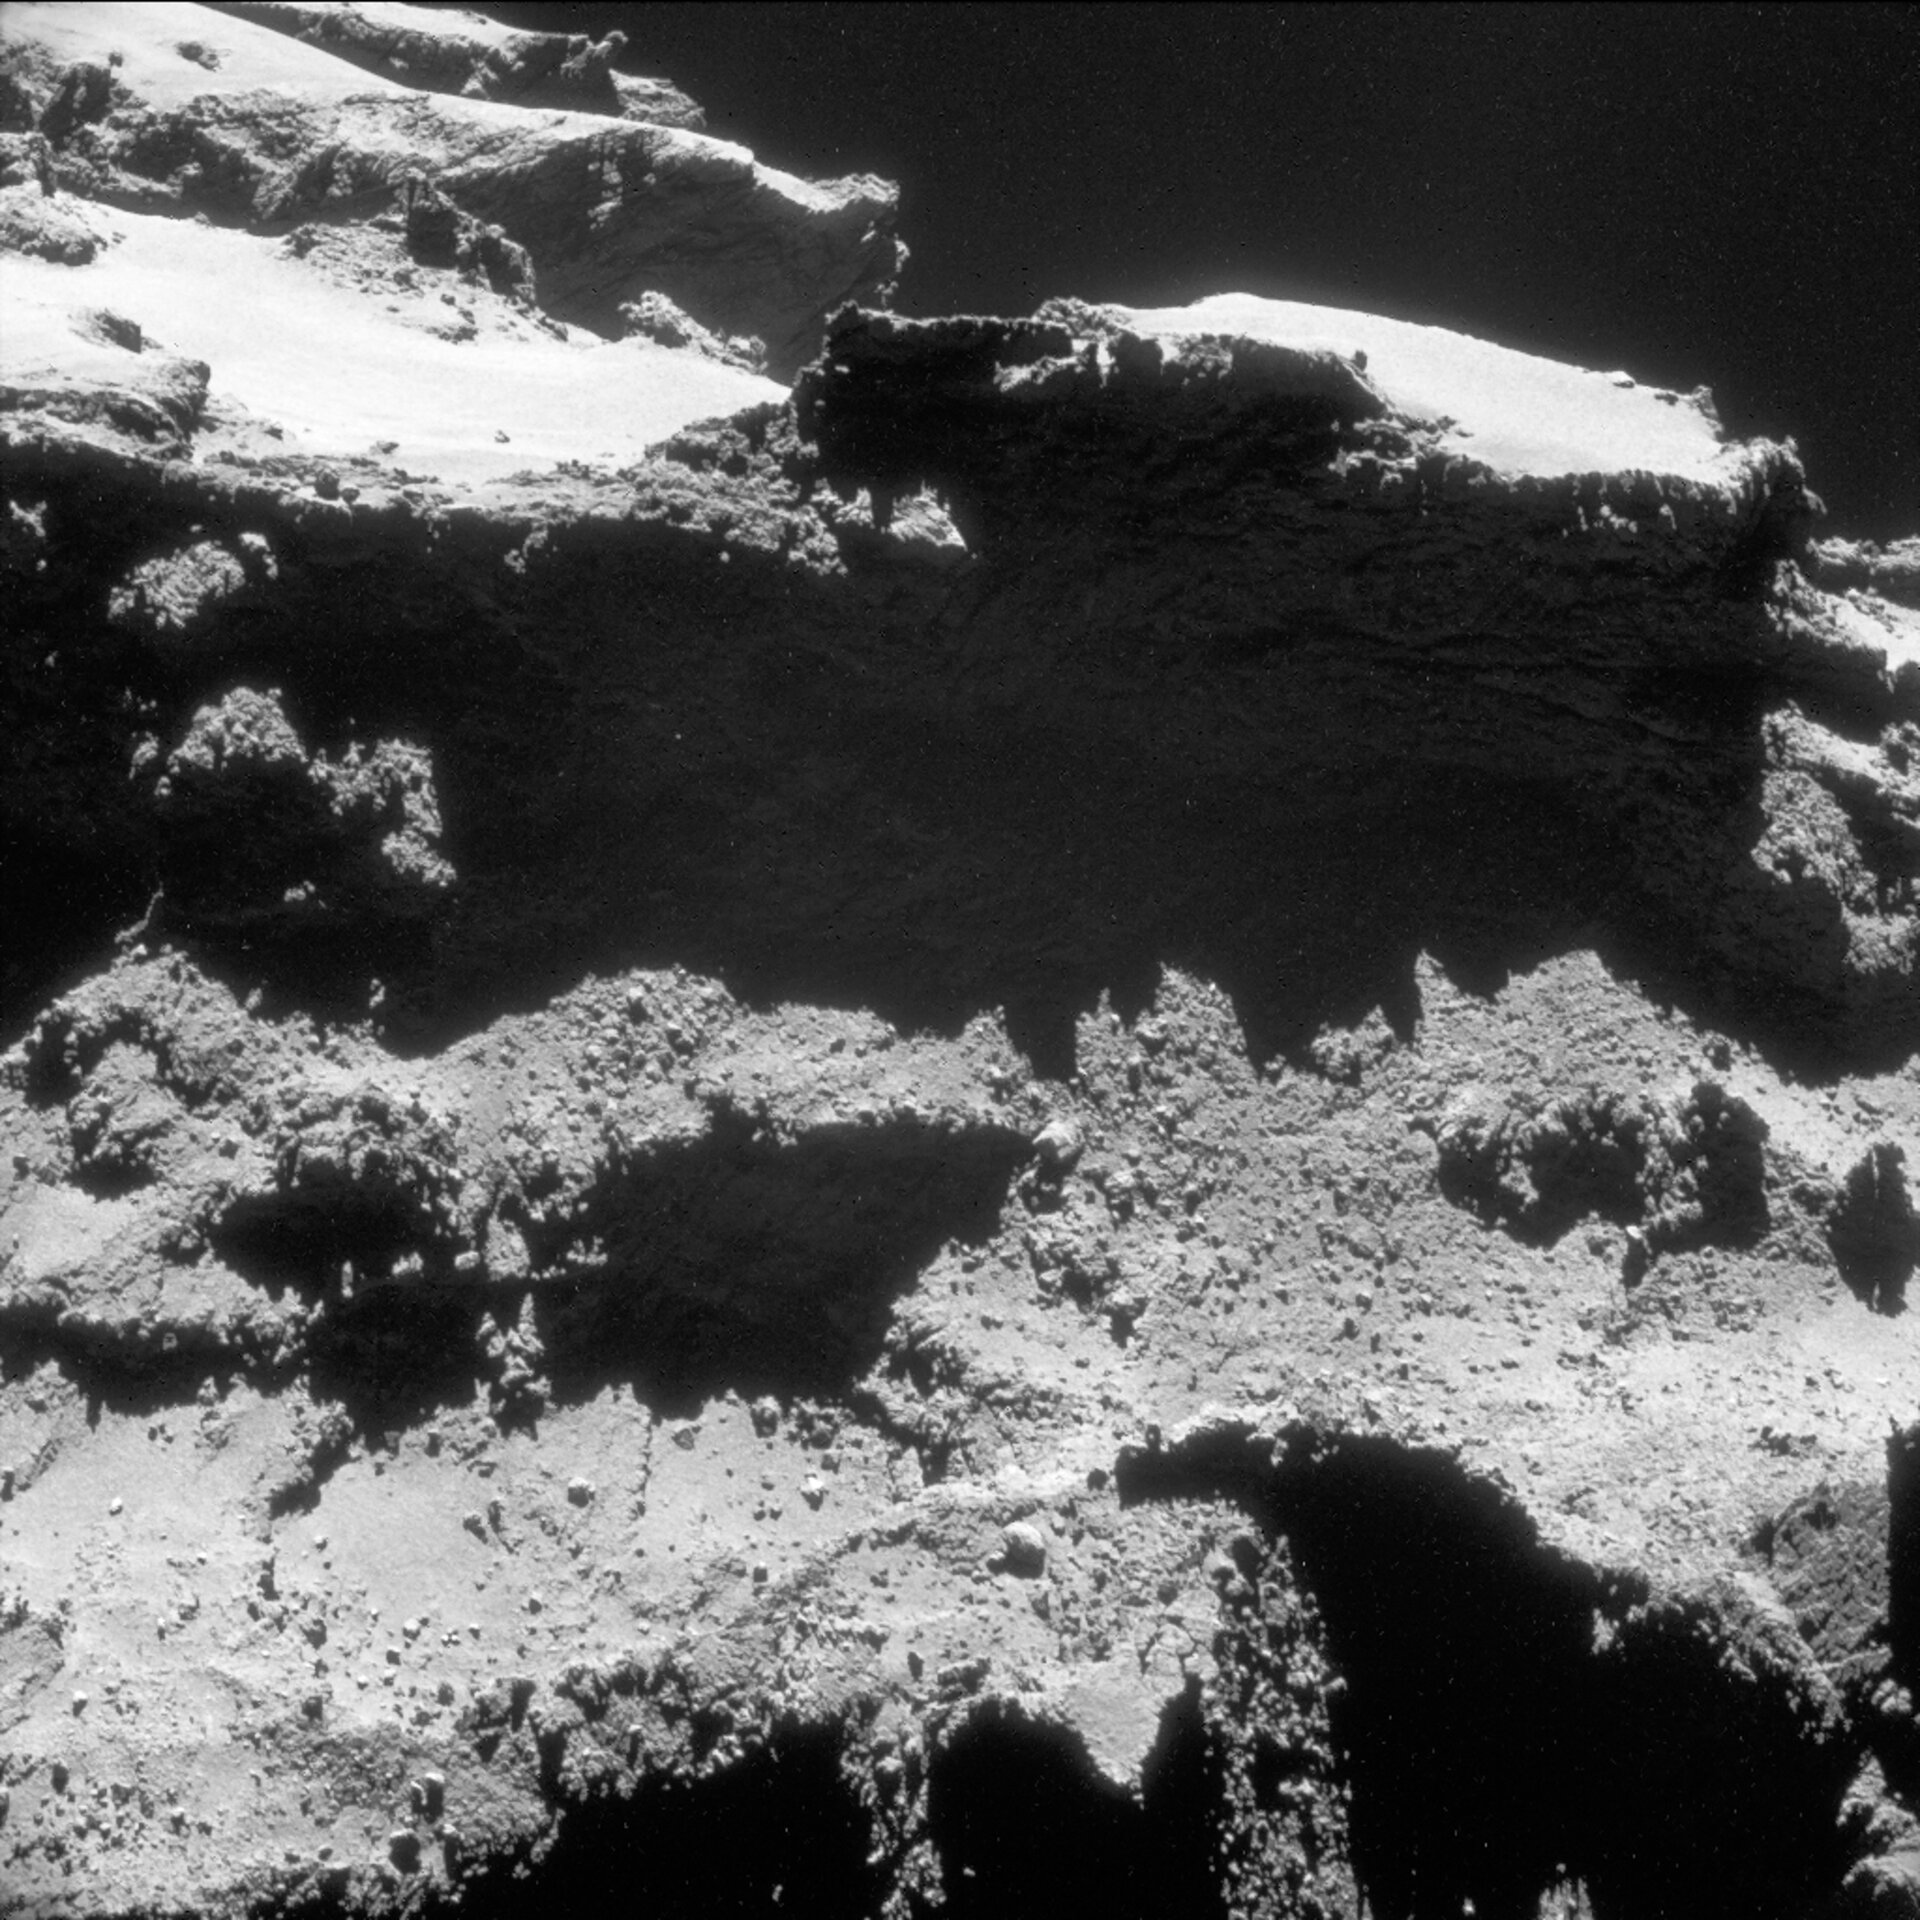 Babi and Aten – NavCam